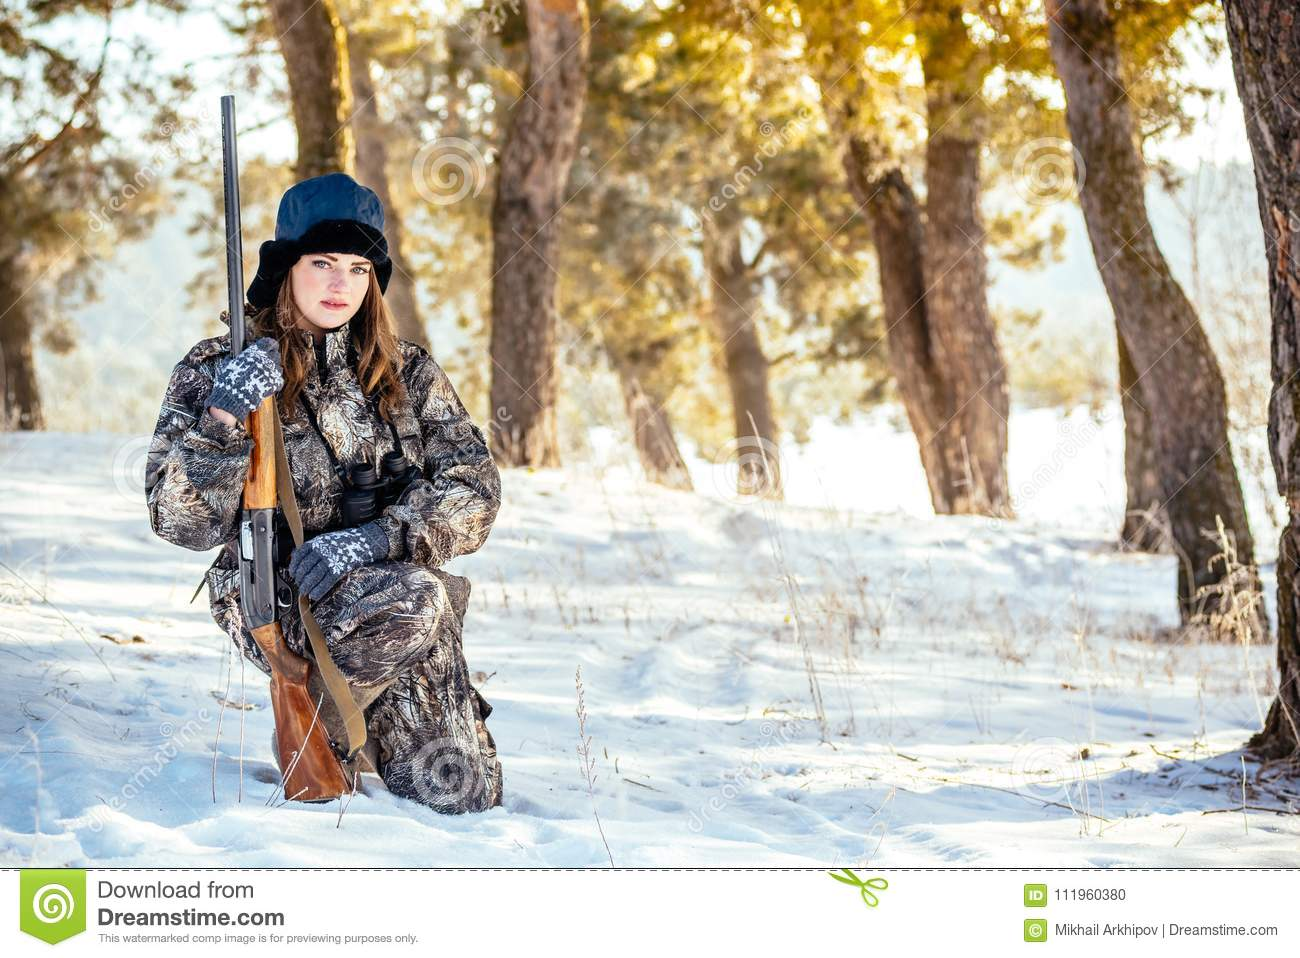 Female hunter in camouflage clothes ready to hunt, holding gun a